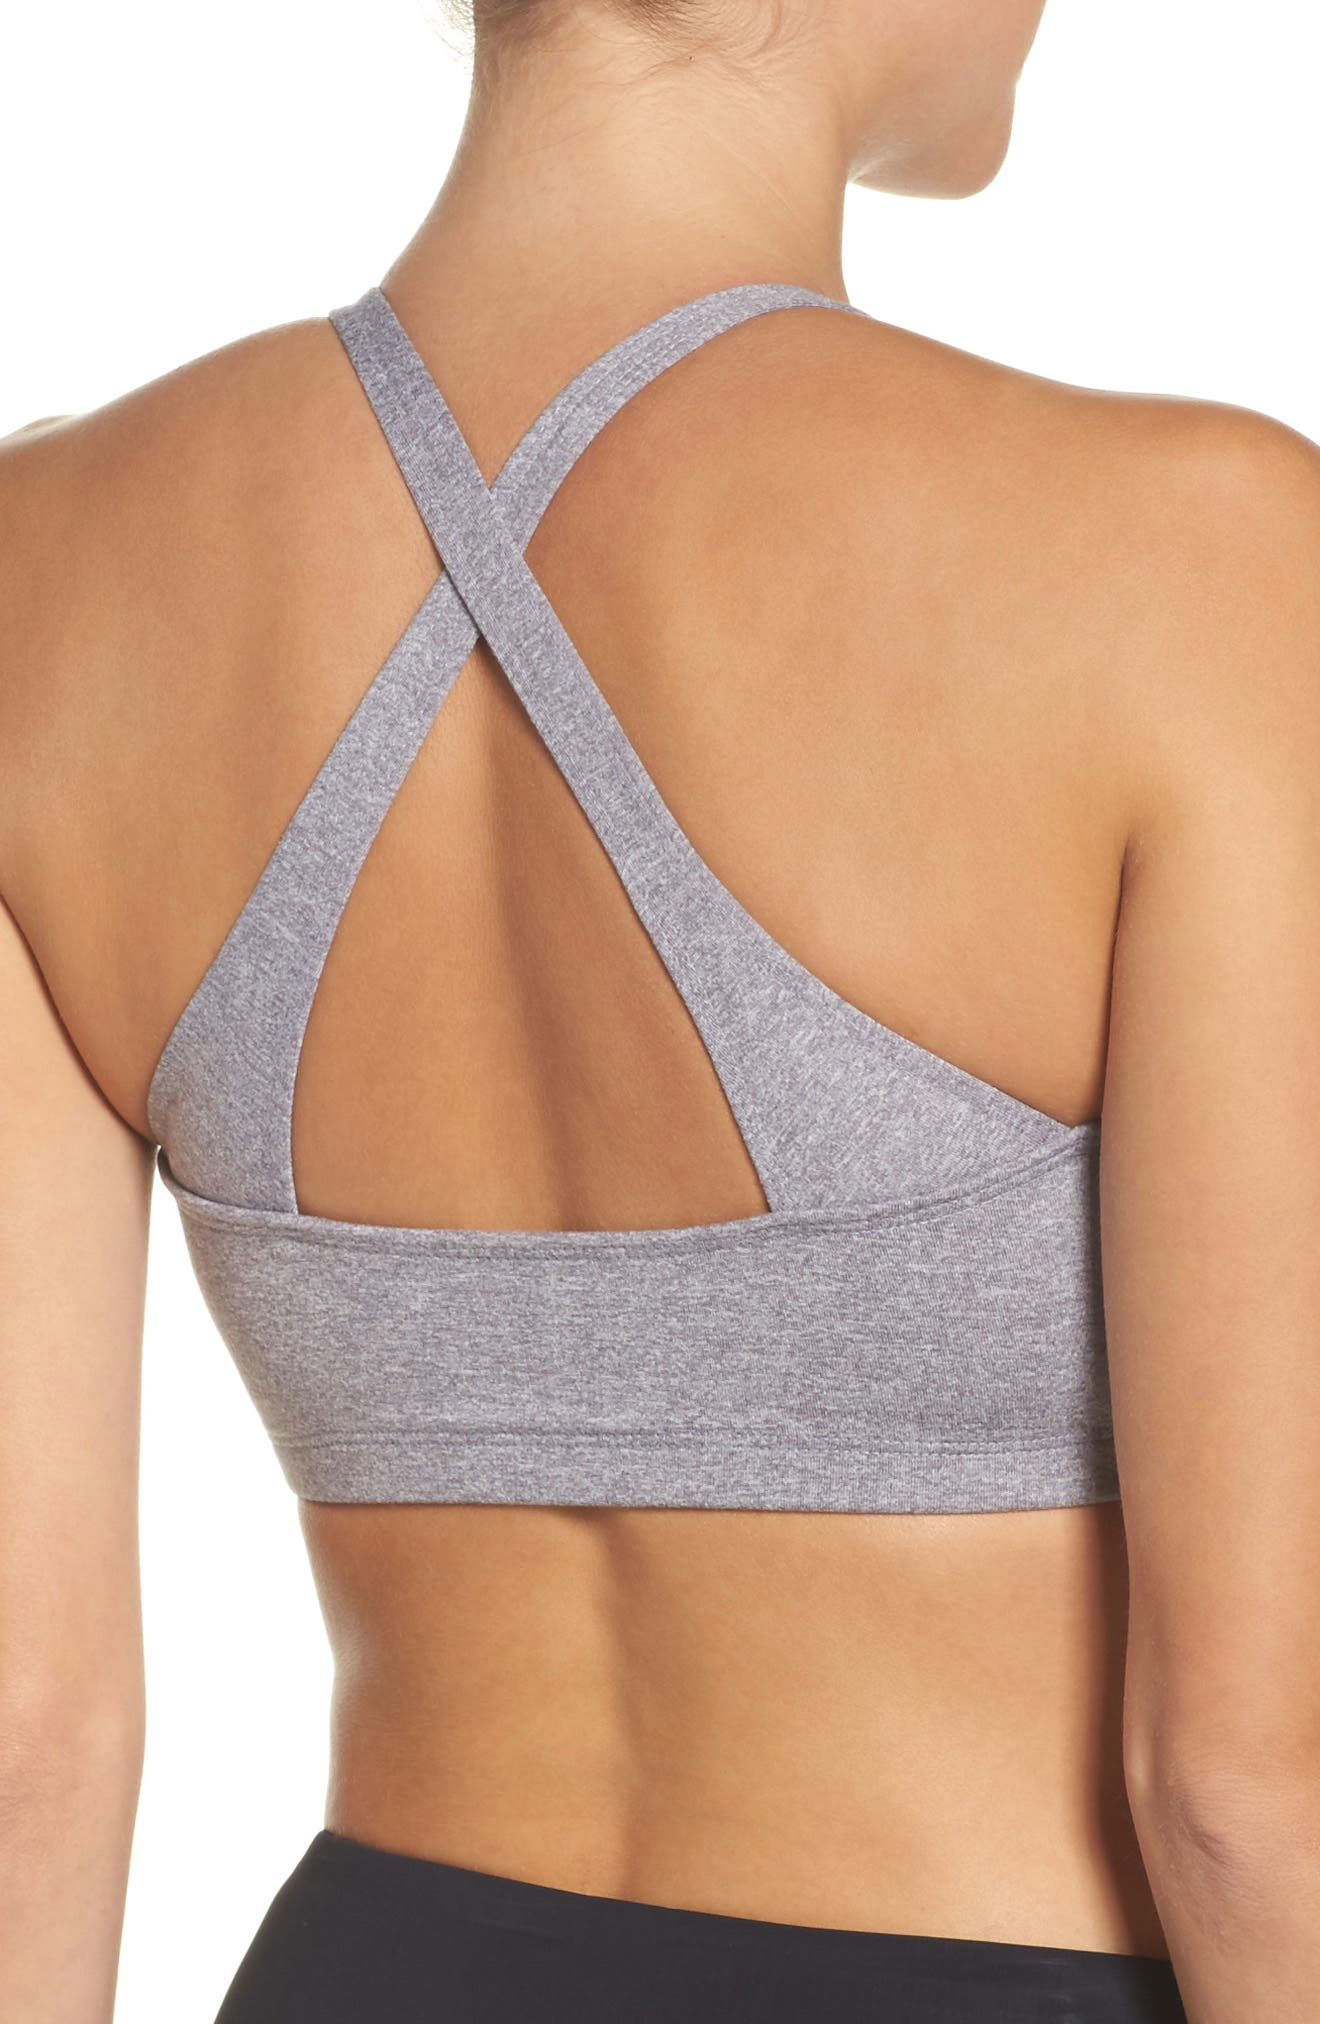 Heart Sports Bra,                             Alternate thumbnail 2, color,                             Stone Majestic